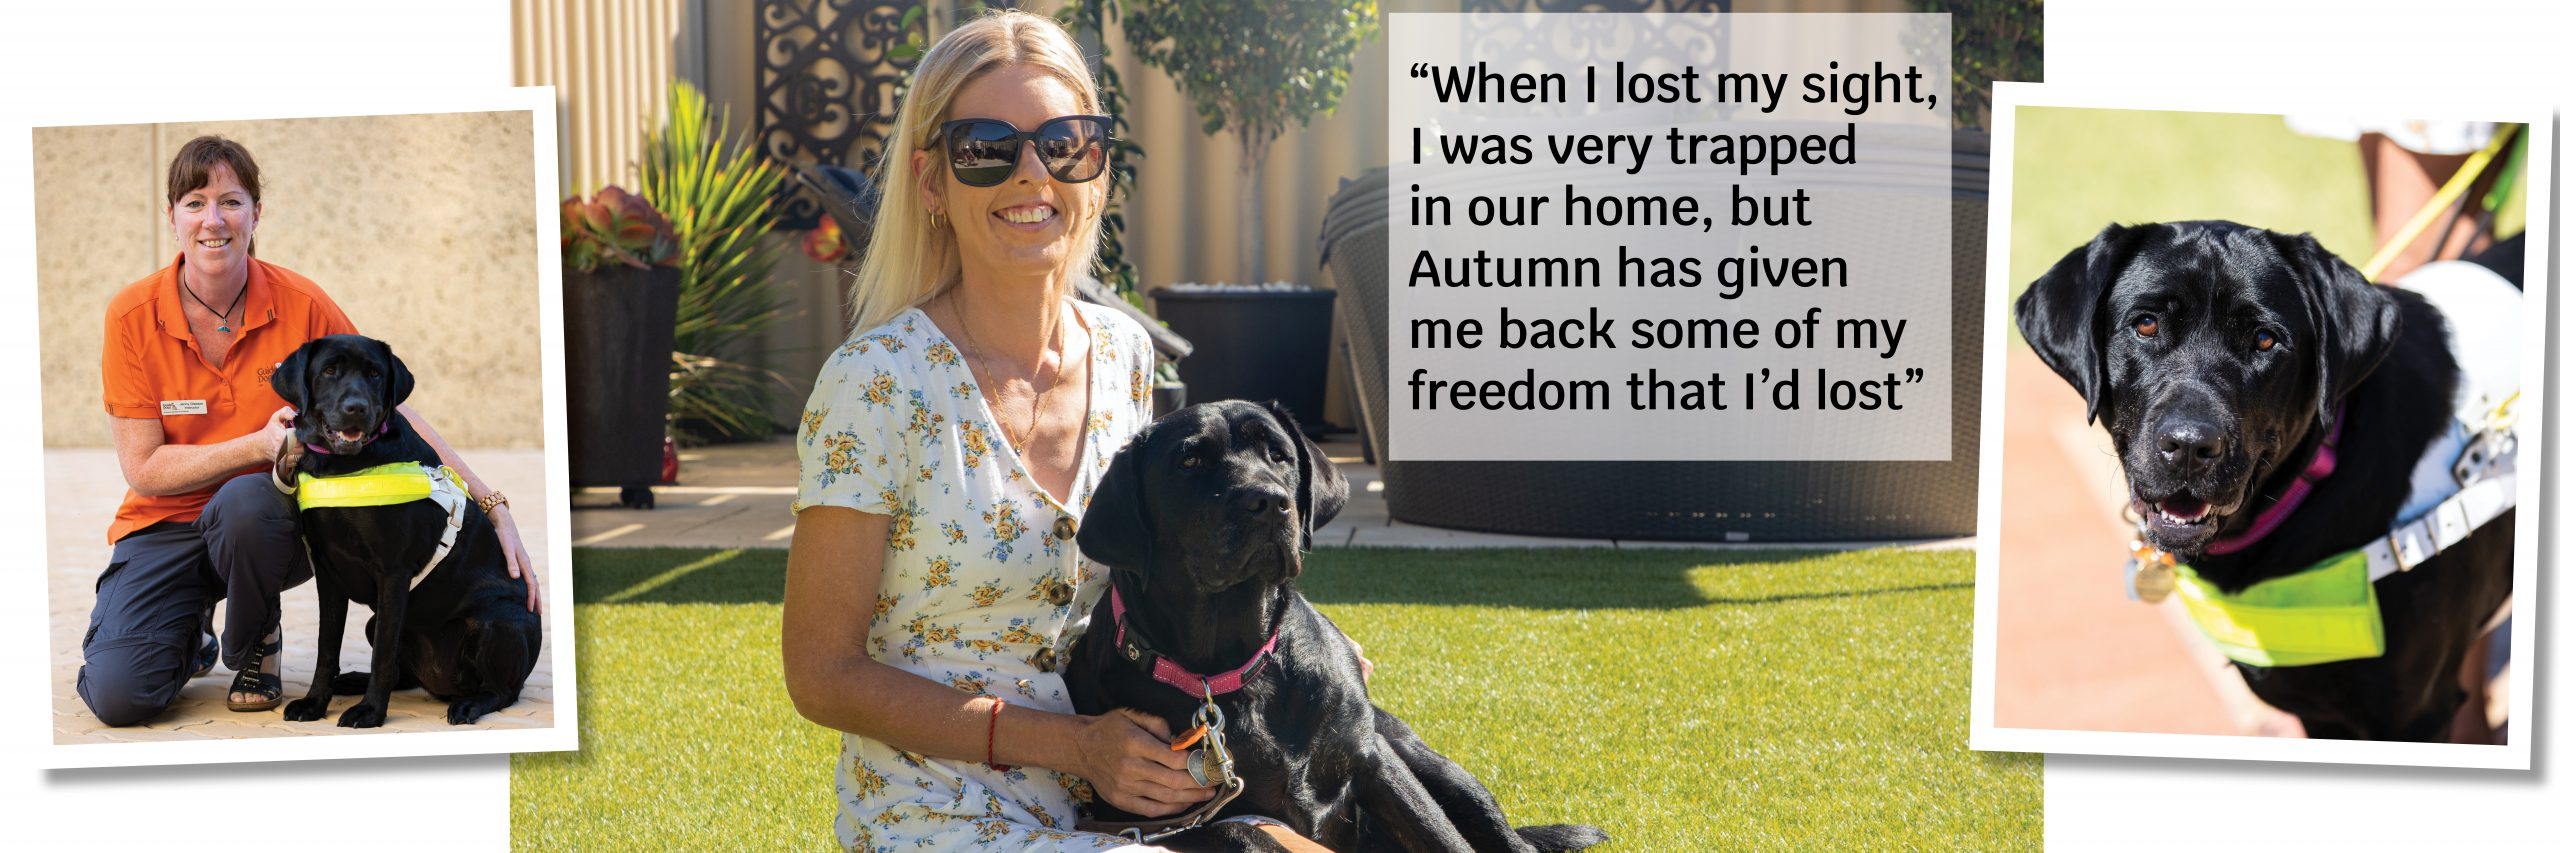 Images of black Guide Dog with Guide Dog trainer and handler. Text reads: When I lost my sight, I was very trapped in our home, but Autumn has given me back some of my freedom that I'd lost